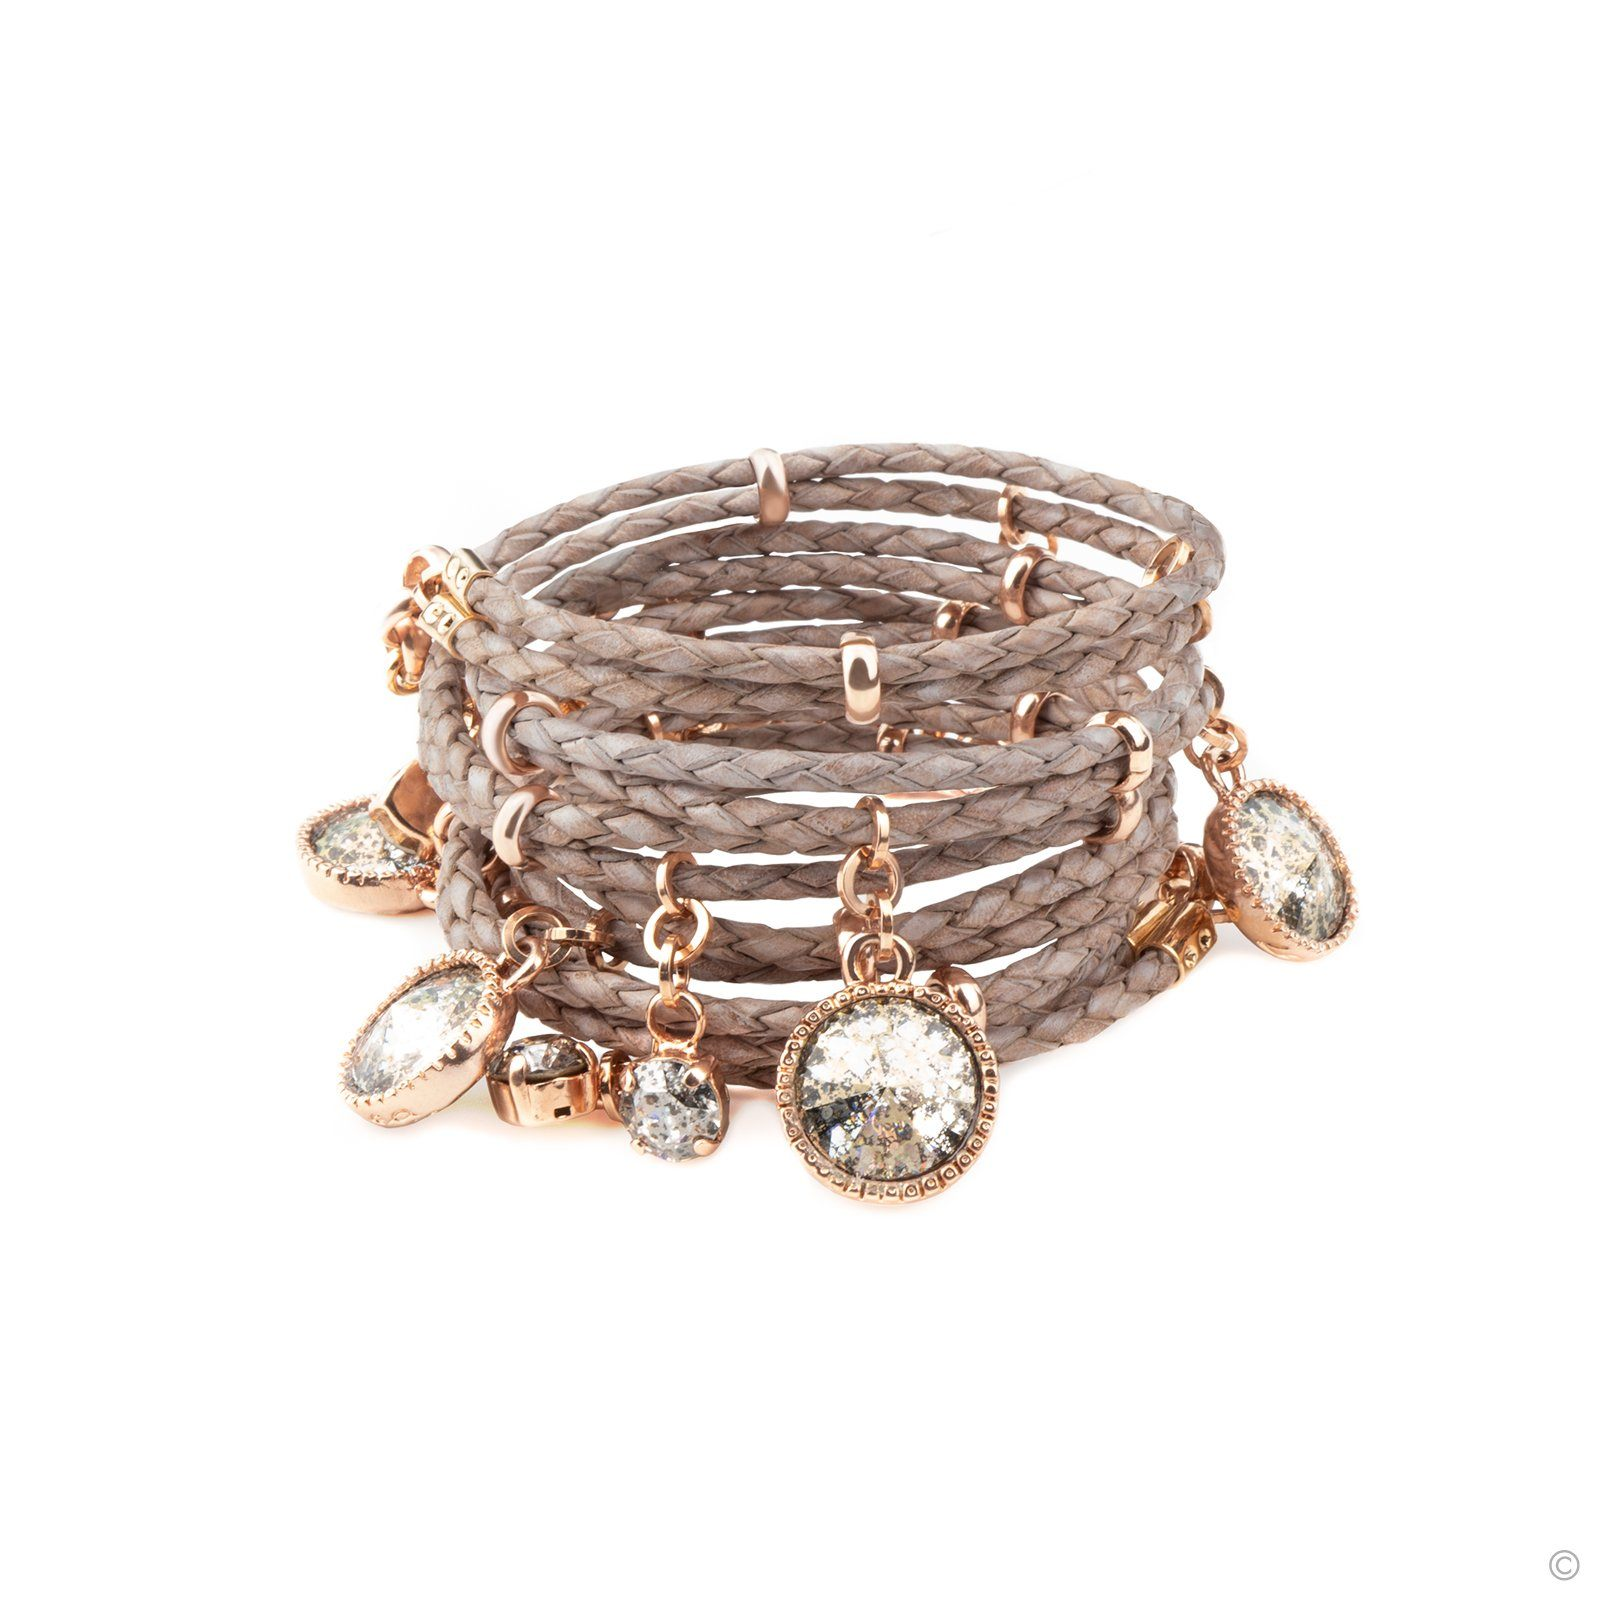 Daydream Leather Bracelet - Taupe & Rose Gold